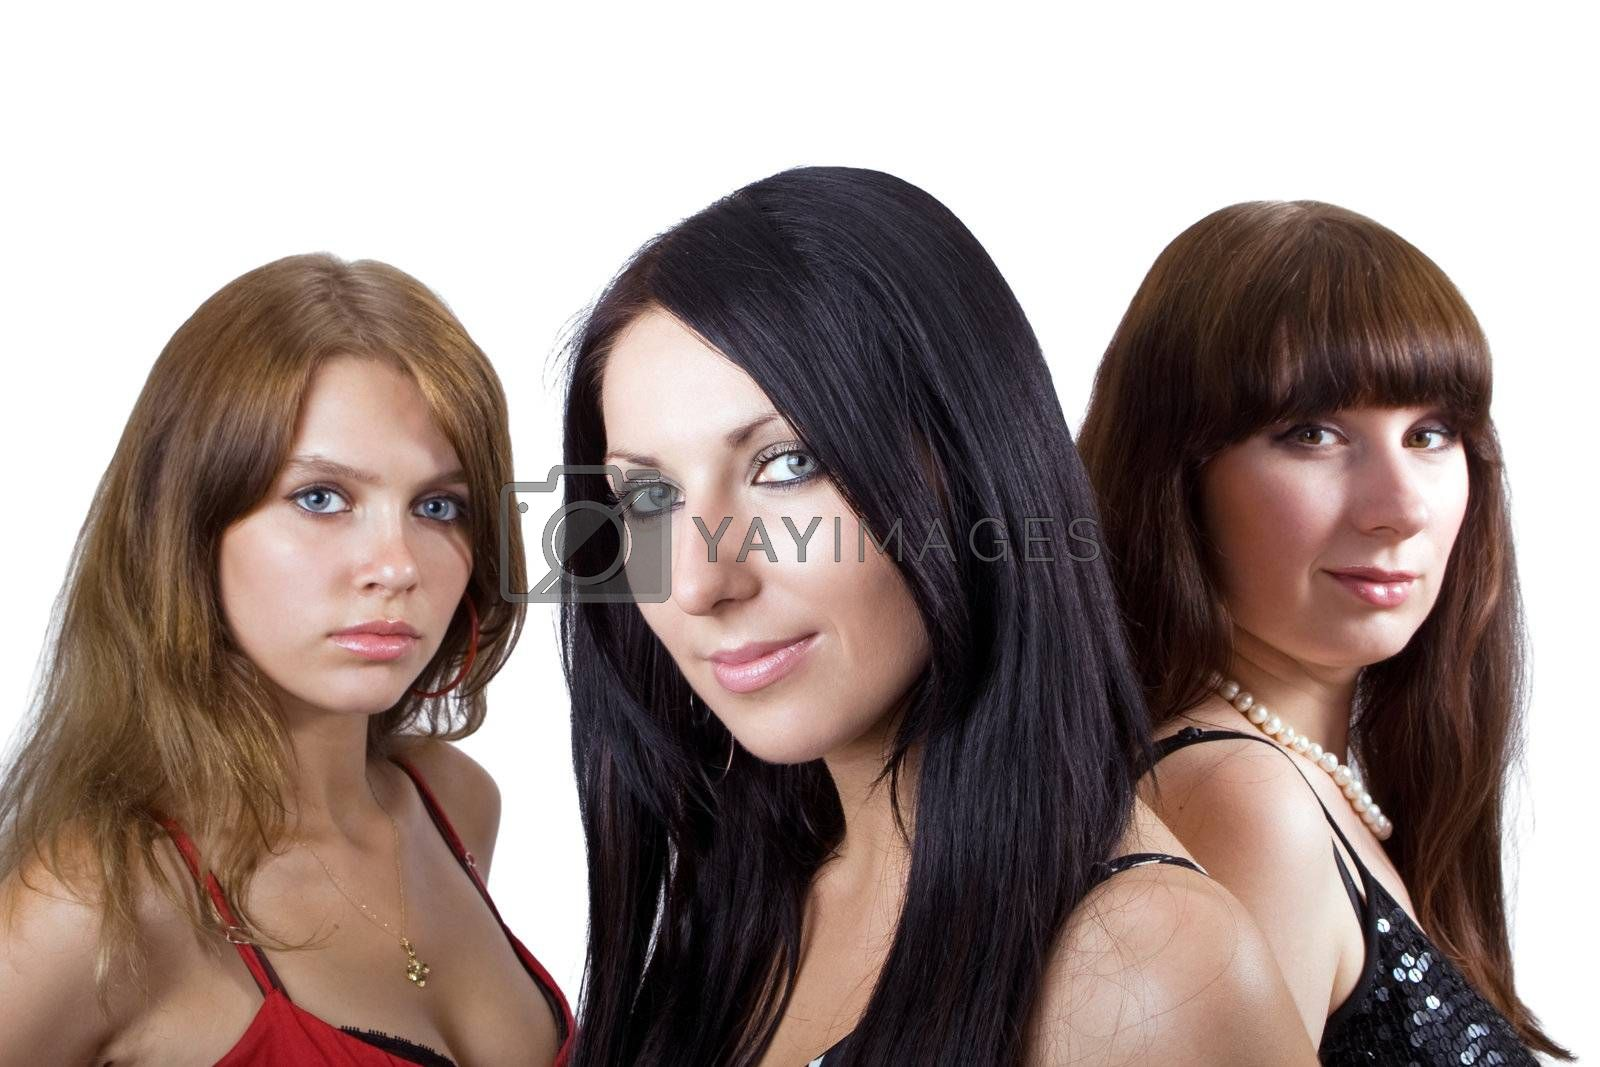 Portrait of three beautiful young women. Focus on the central girl